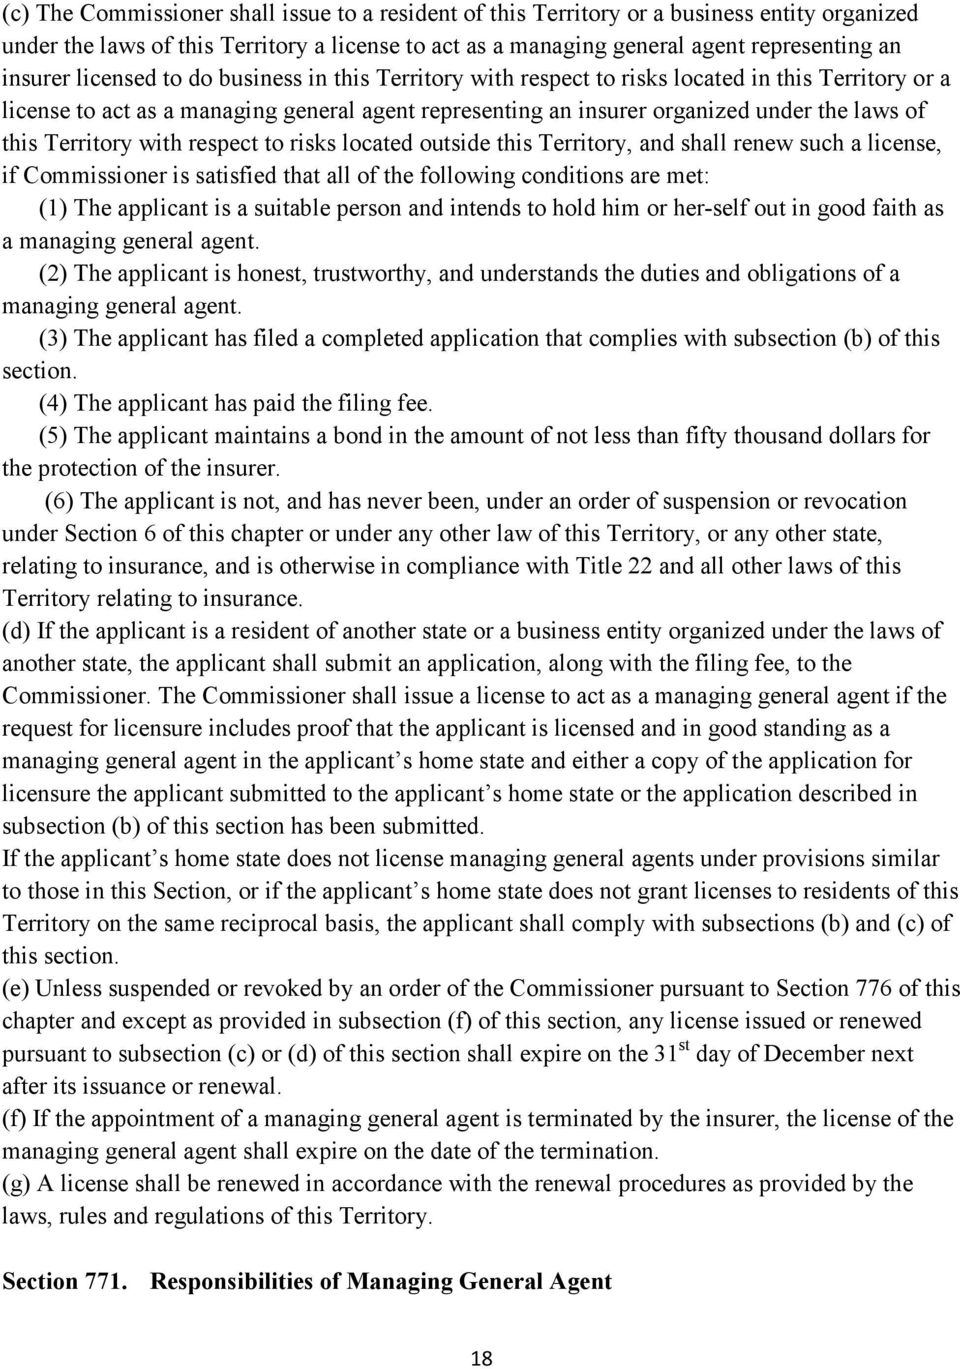 Territory with respect to risks located outside this Territory, and shall renew such a license, if Commissioner is satisfied that all of the following conditions are met: (1) The applicant is a